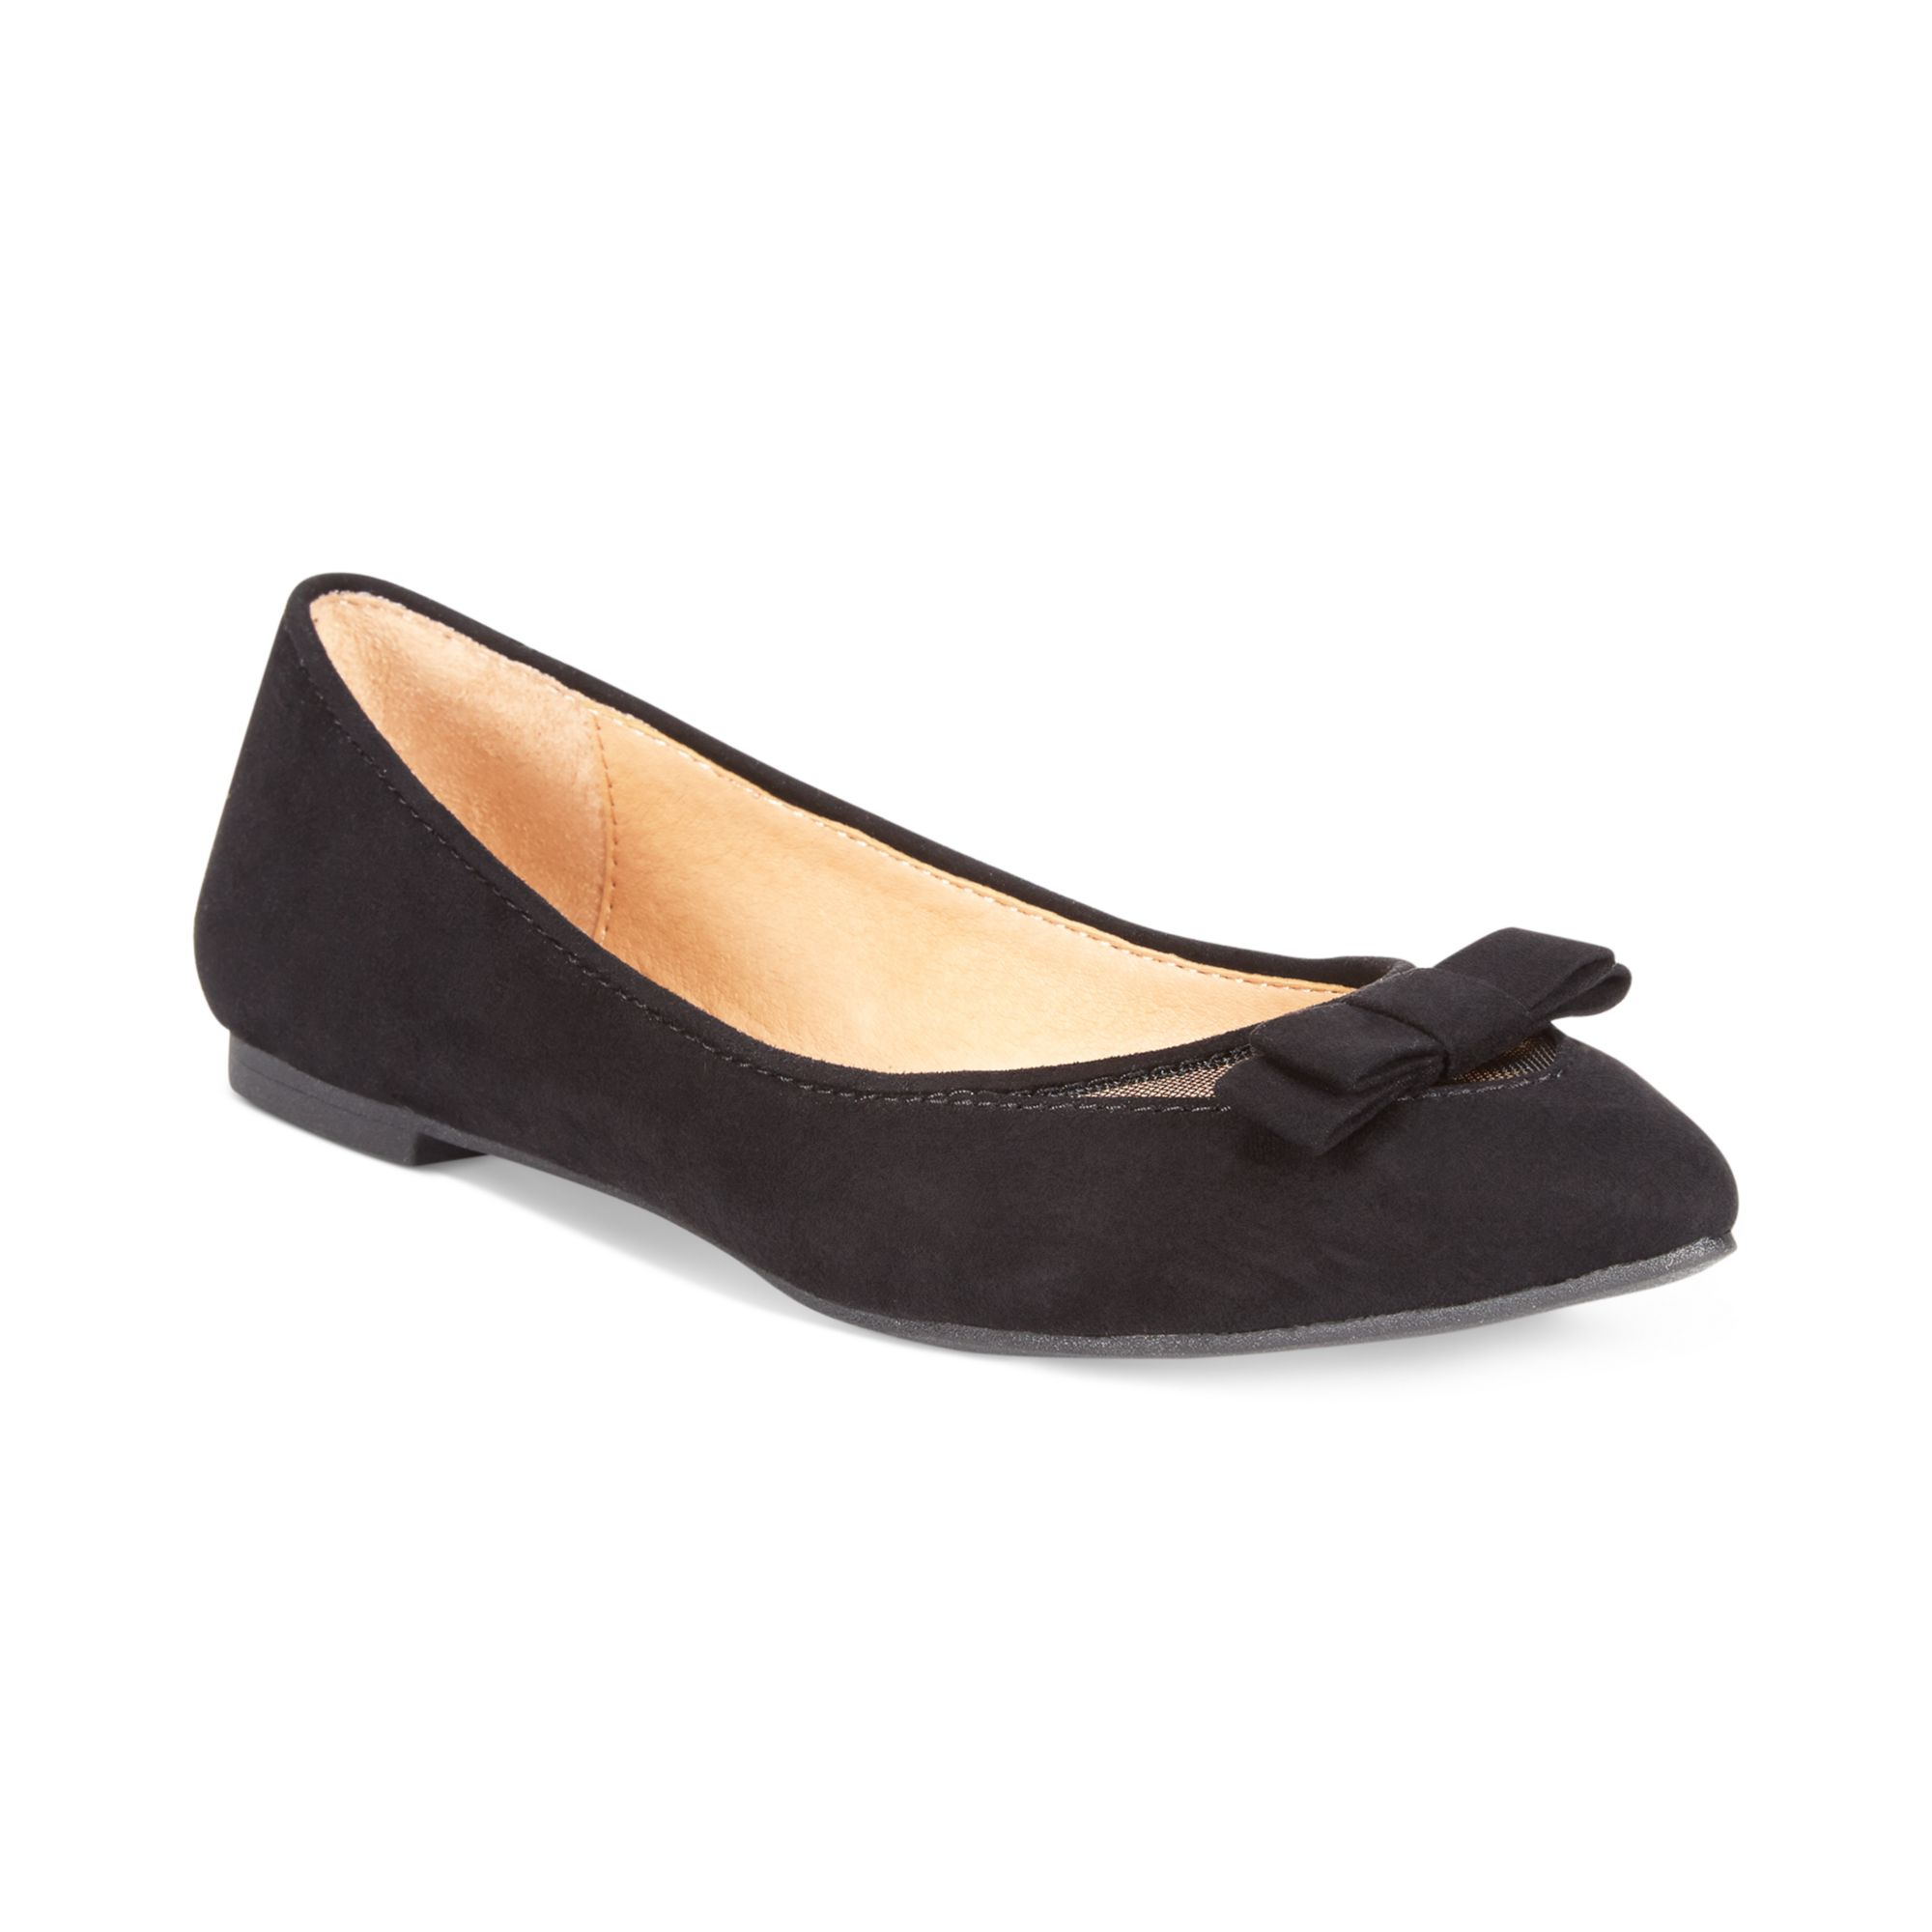 matches. ($ - $) Find great deals on the latest styles of Report flat ballet flats. Compare prices & save money on Women's Shoes.